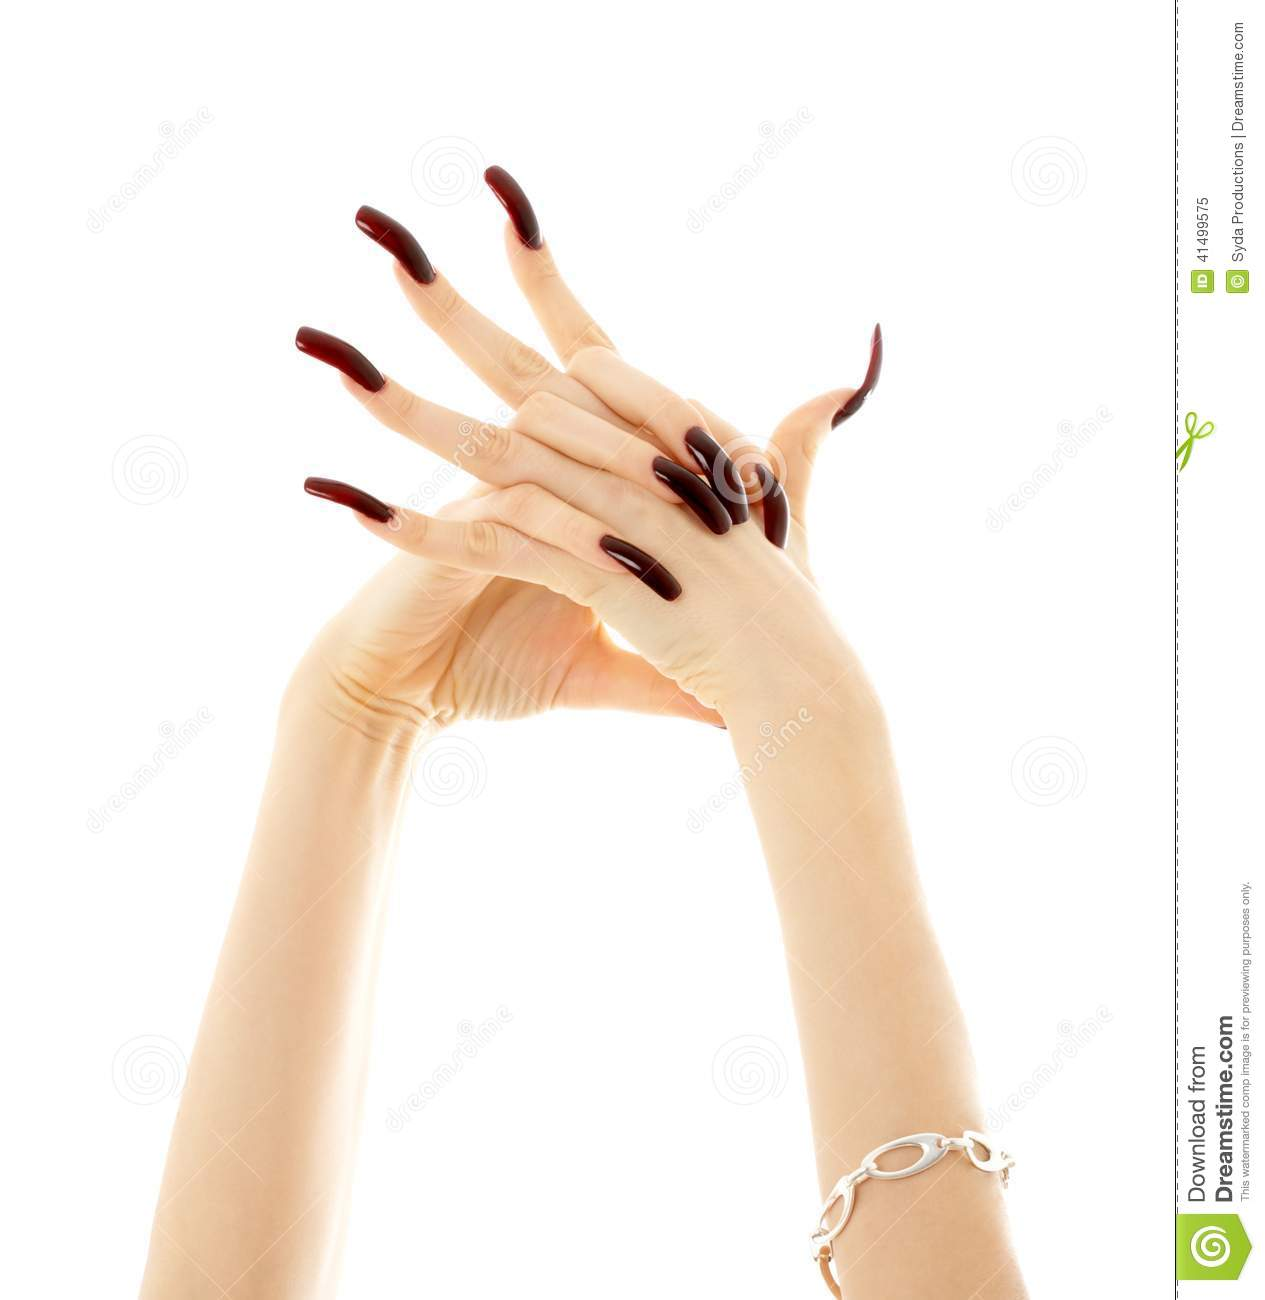 Http Www Dreamstime Com Stock Photo Hands Long Acrylic Nails Over White Image41499575